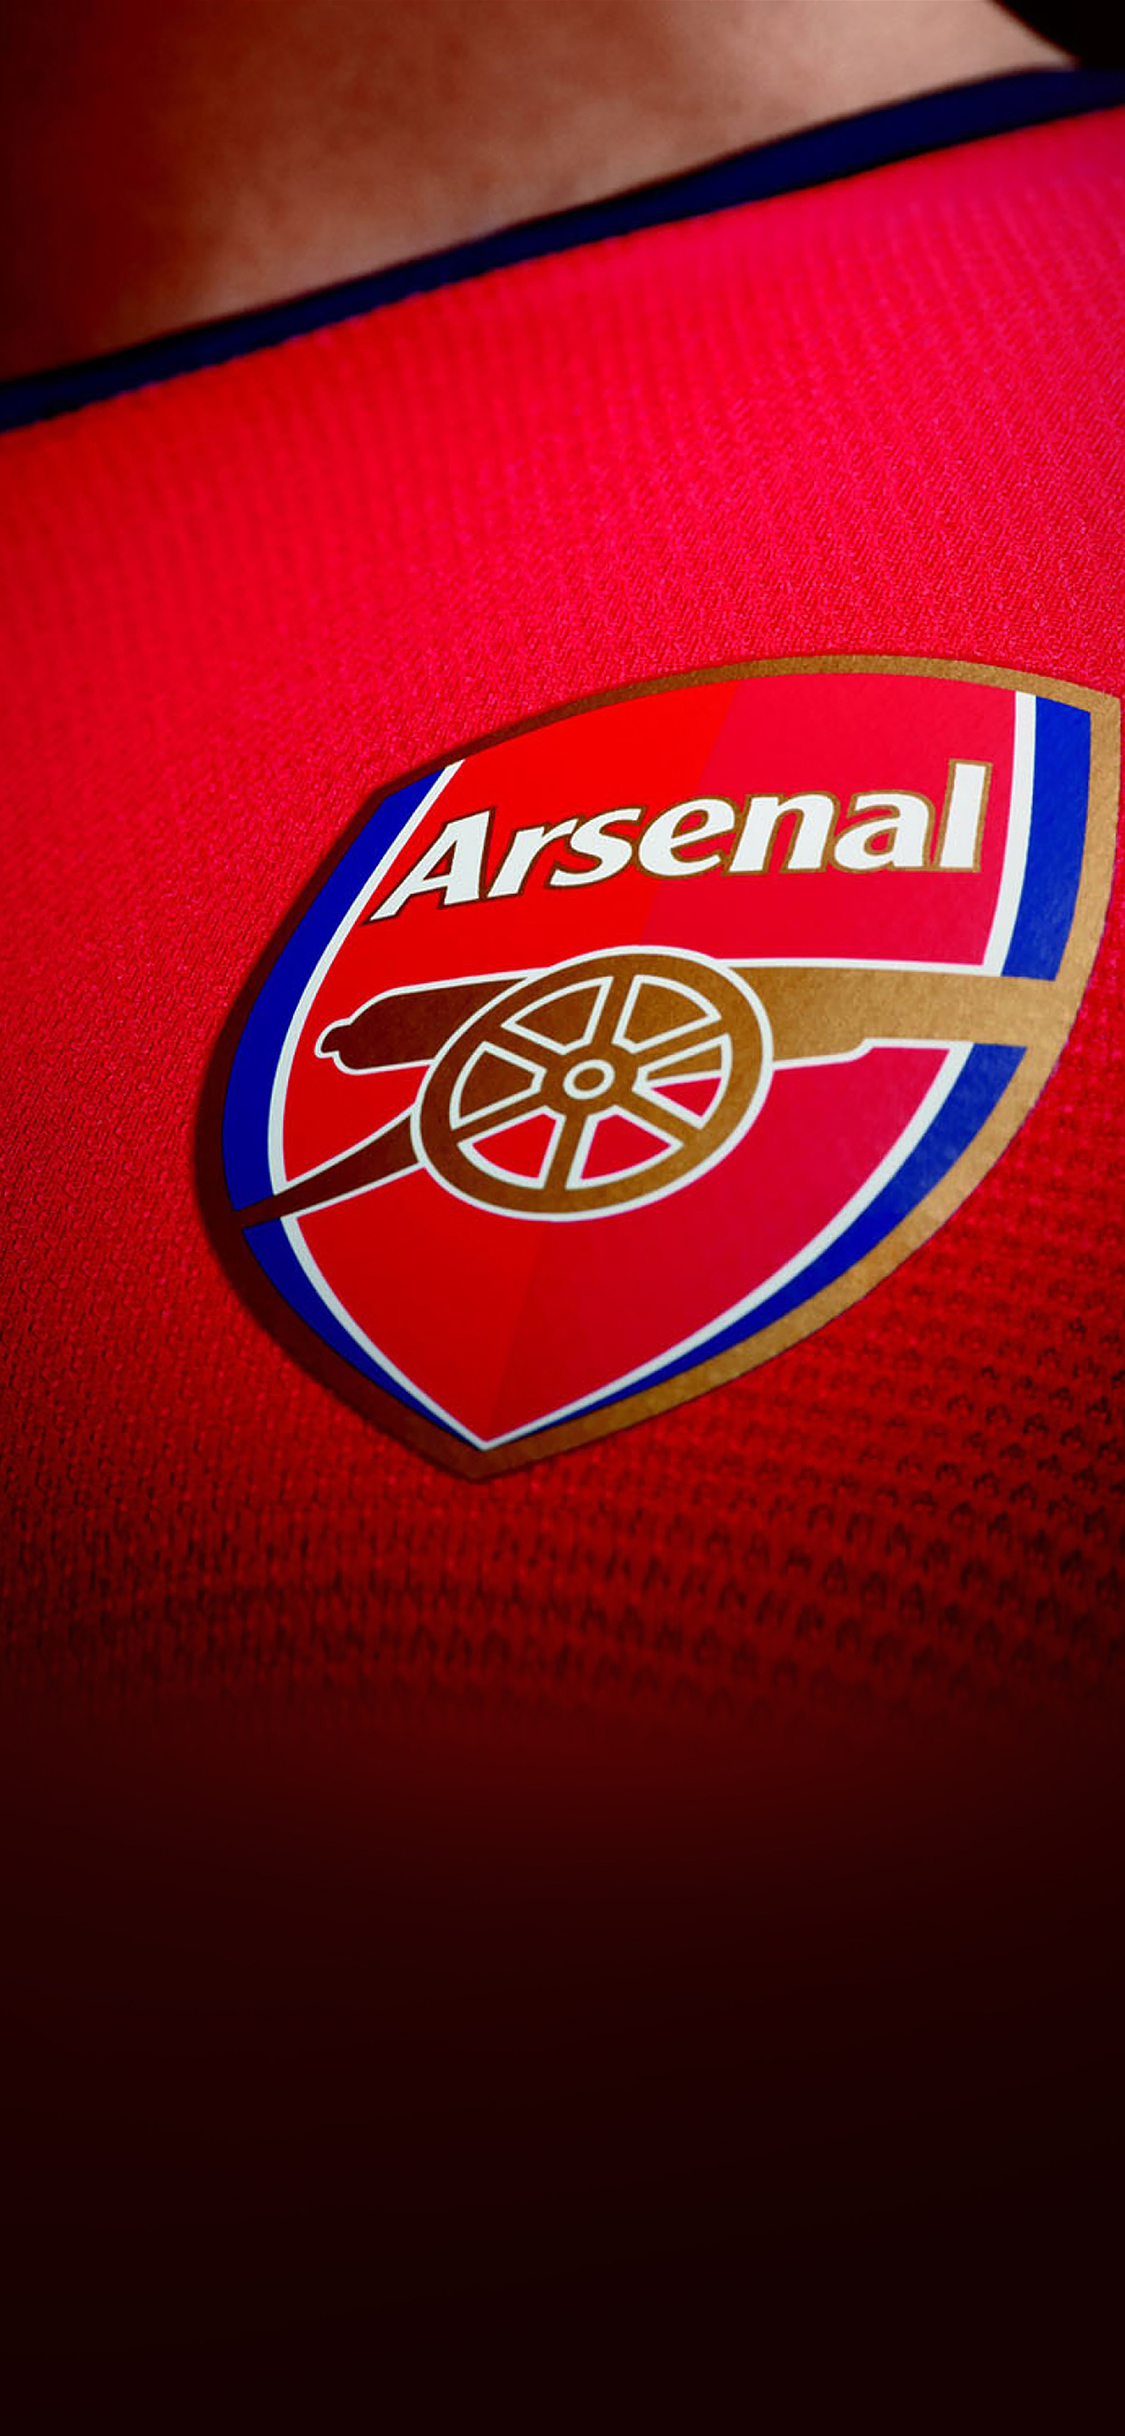 Papers Co Iphone Wallpaper Ai52 Arsenal Football England